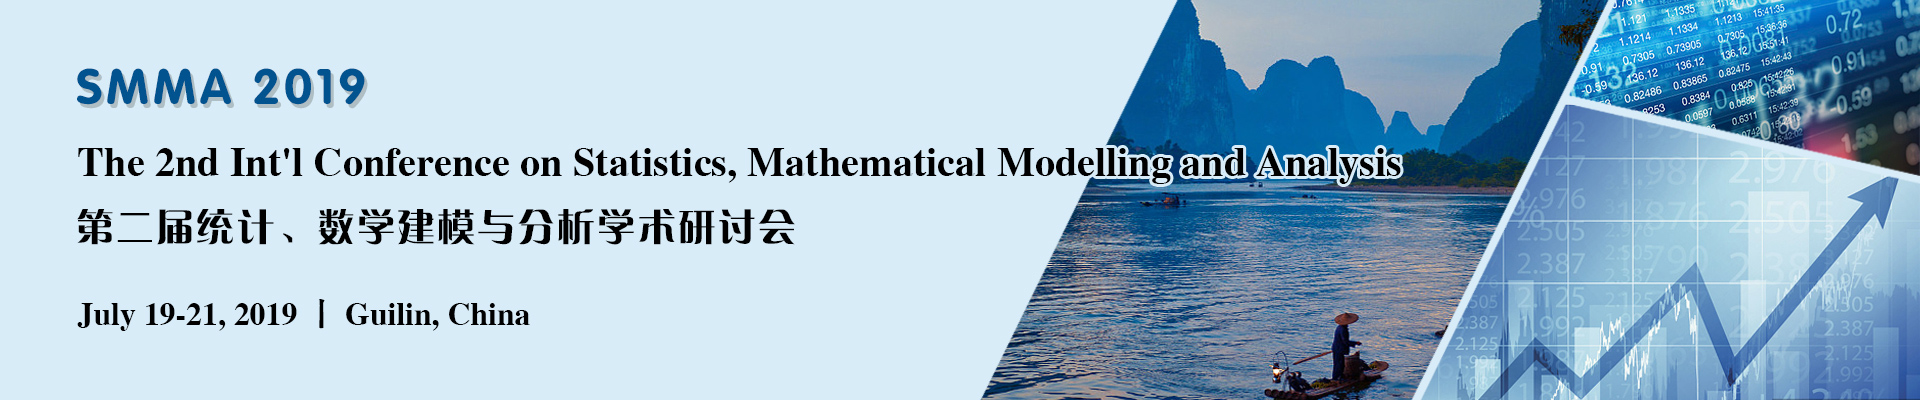 The 2nd Int'l Conference on Statistics, Mathematical Modelling and Analysis (SMMA 2019), Guilin, Guangxi, China